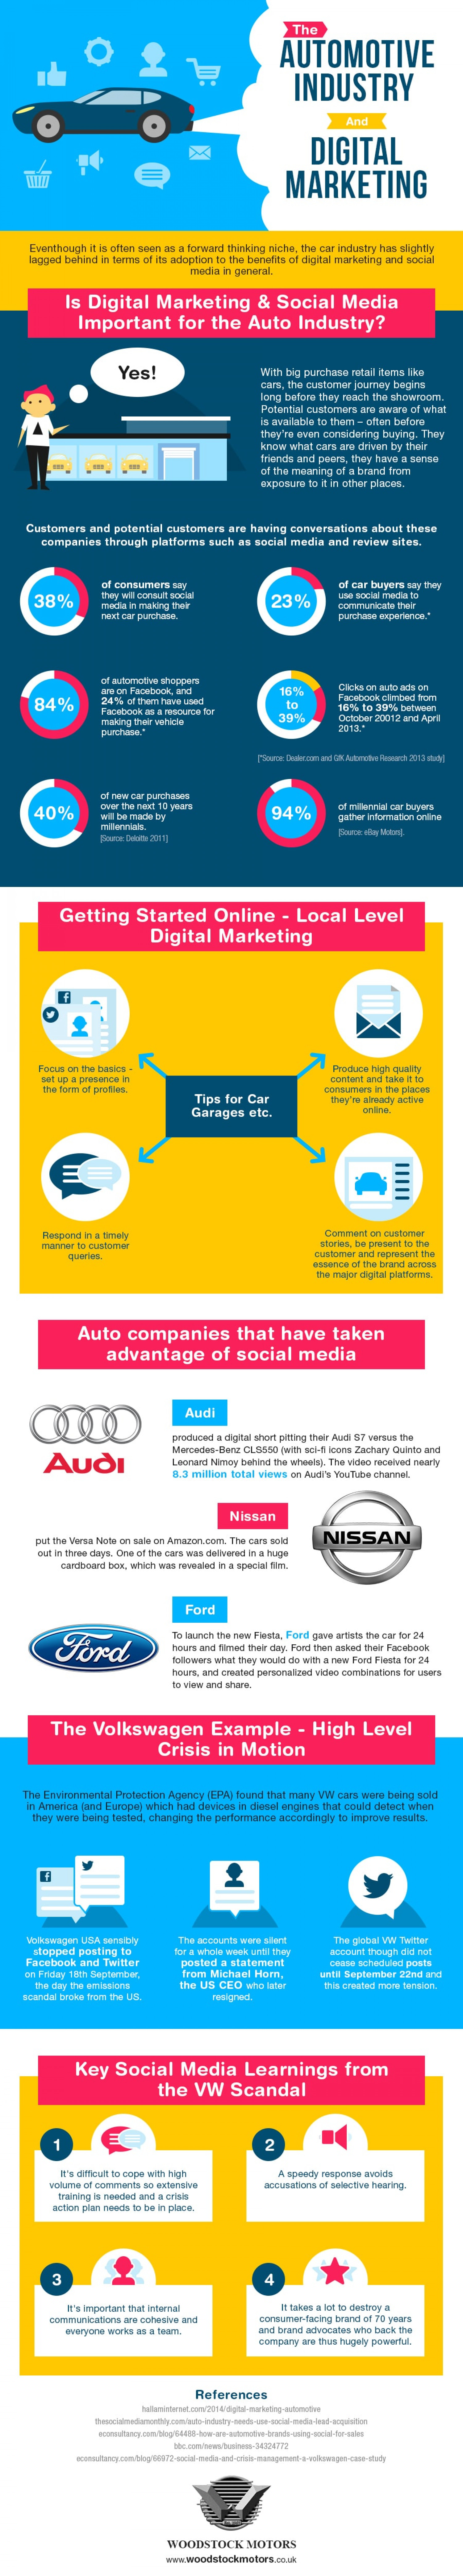 Digital Marketing & The Auto Industry – Infographic Infographic